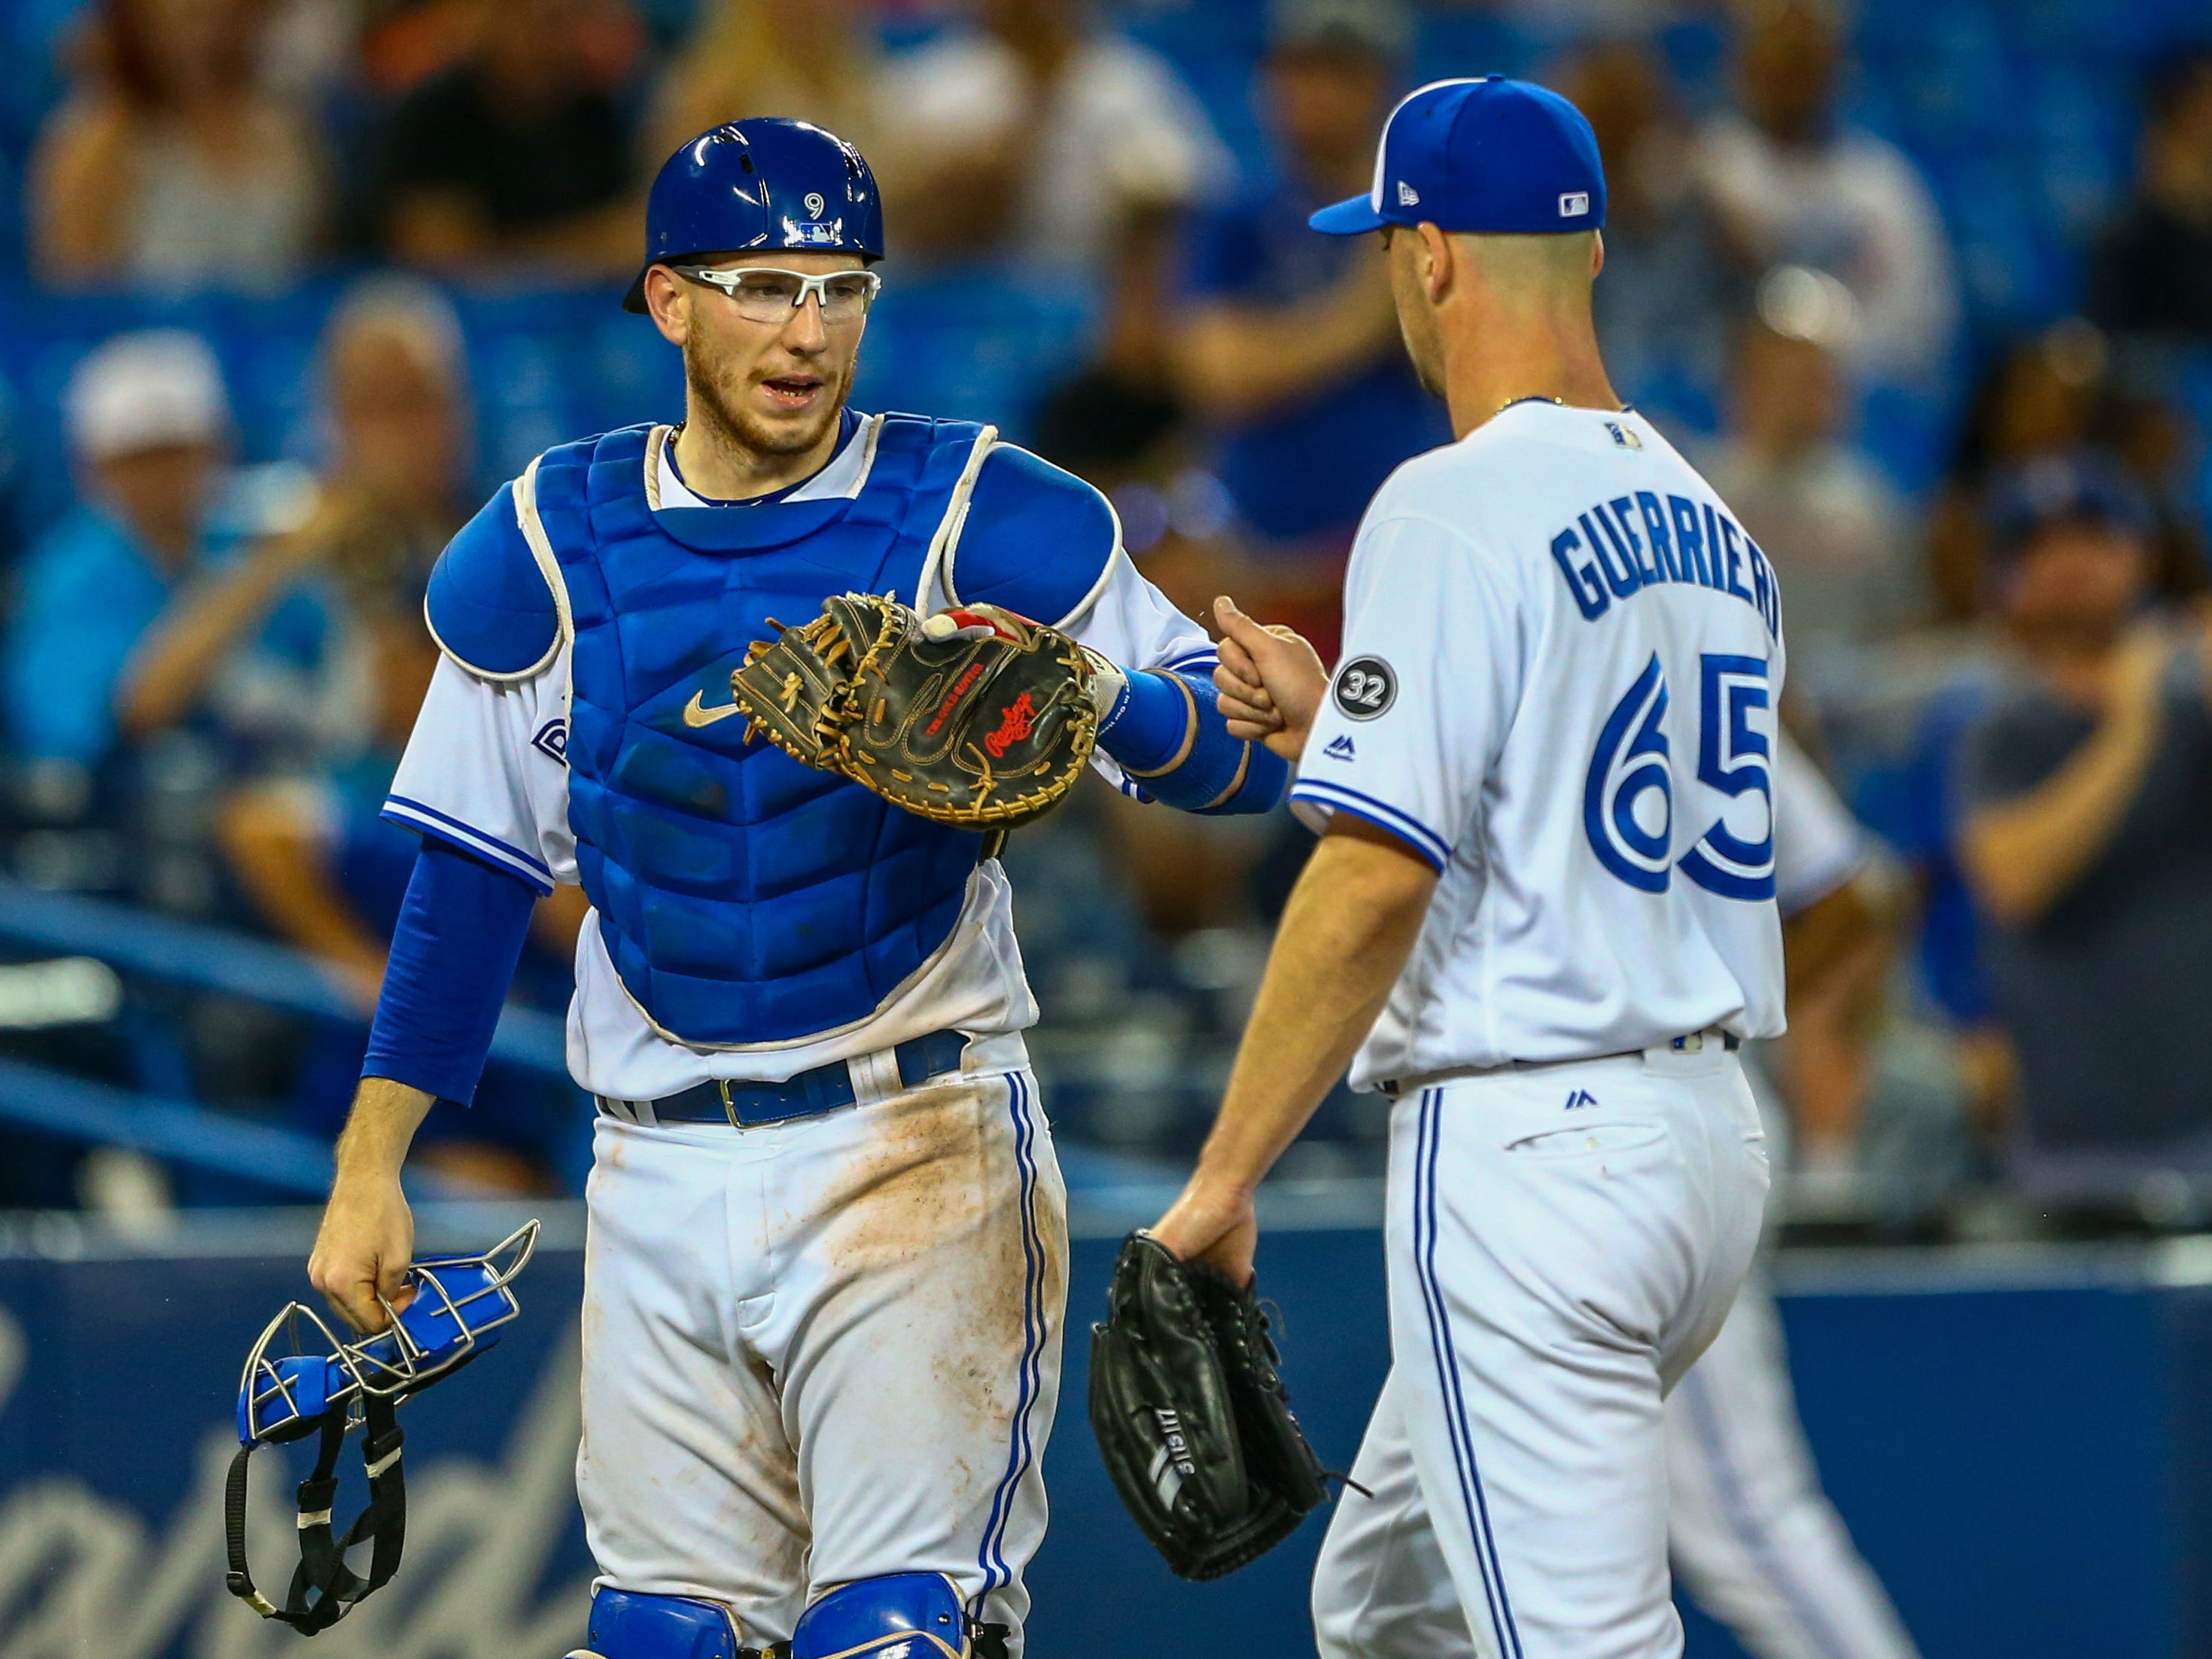 Sep 4, 2018; Toronto, Ontario, CAN; Toronto Blue Jays catcher Danny Jansen (9) gives starting pitcher Taylor Guerrieri (65) a high five after completing the eighth inning against the Tampa Bay Rays at Rogers Centre. Mandatory Credit: Kevin Sousa-USA TODAY Sports